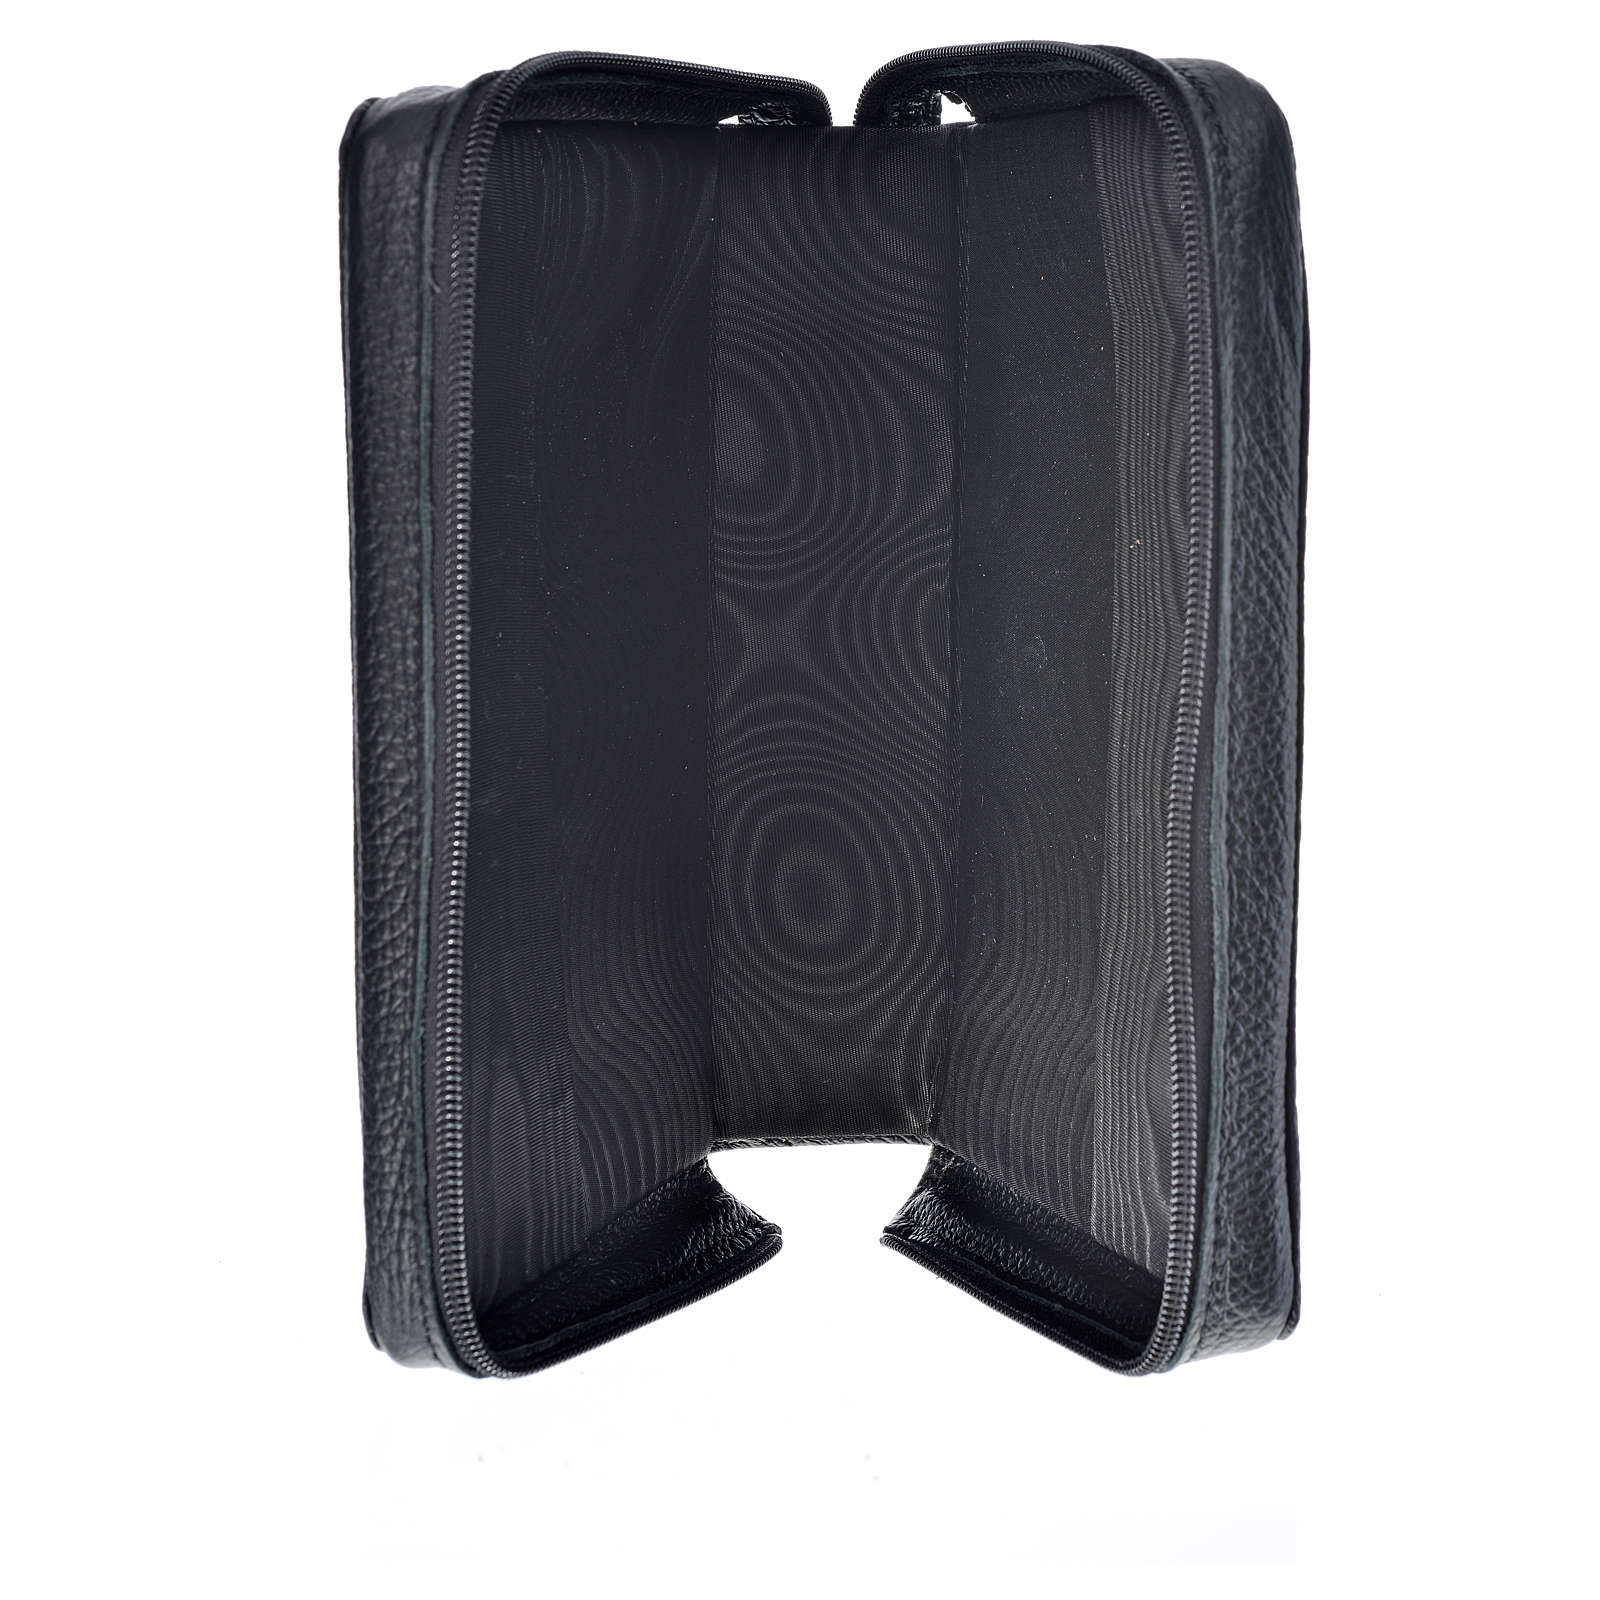 Morning and Evening Prayer cover, black genuine leather with image of Our Lady of Kiko 4